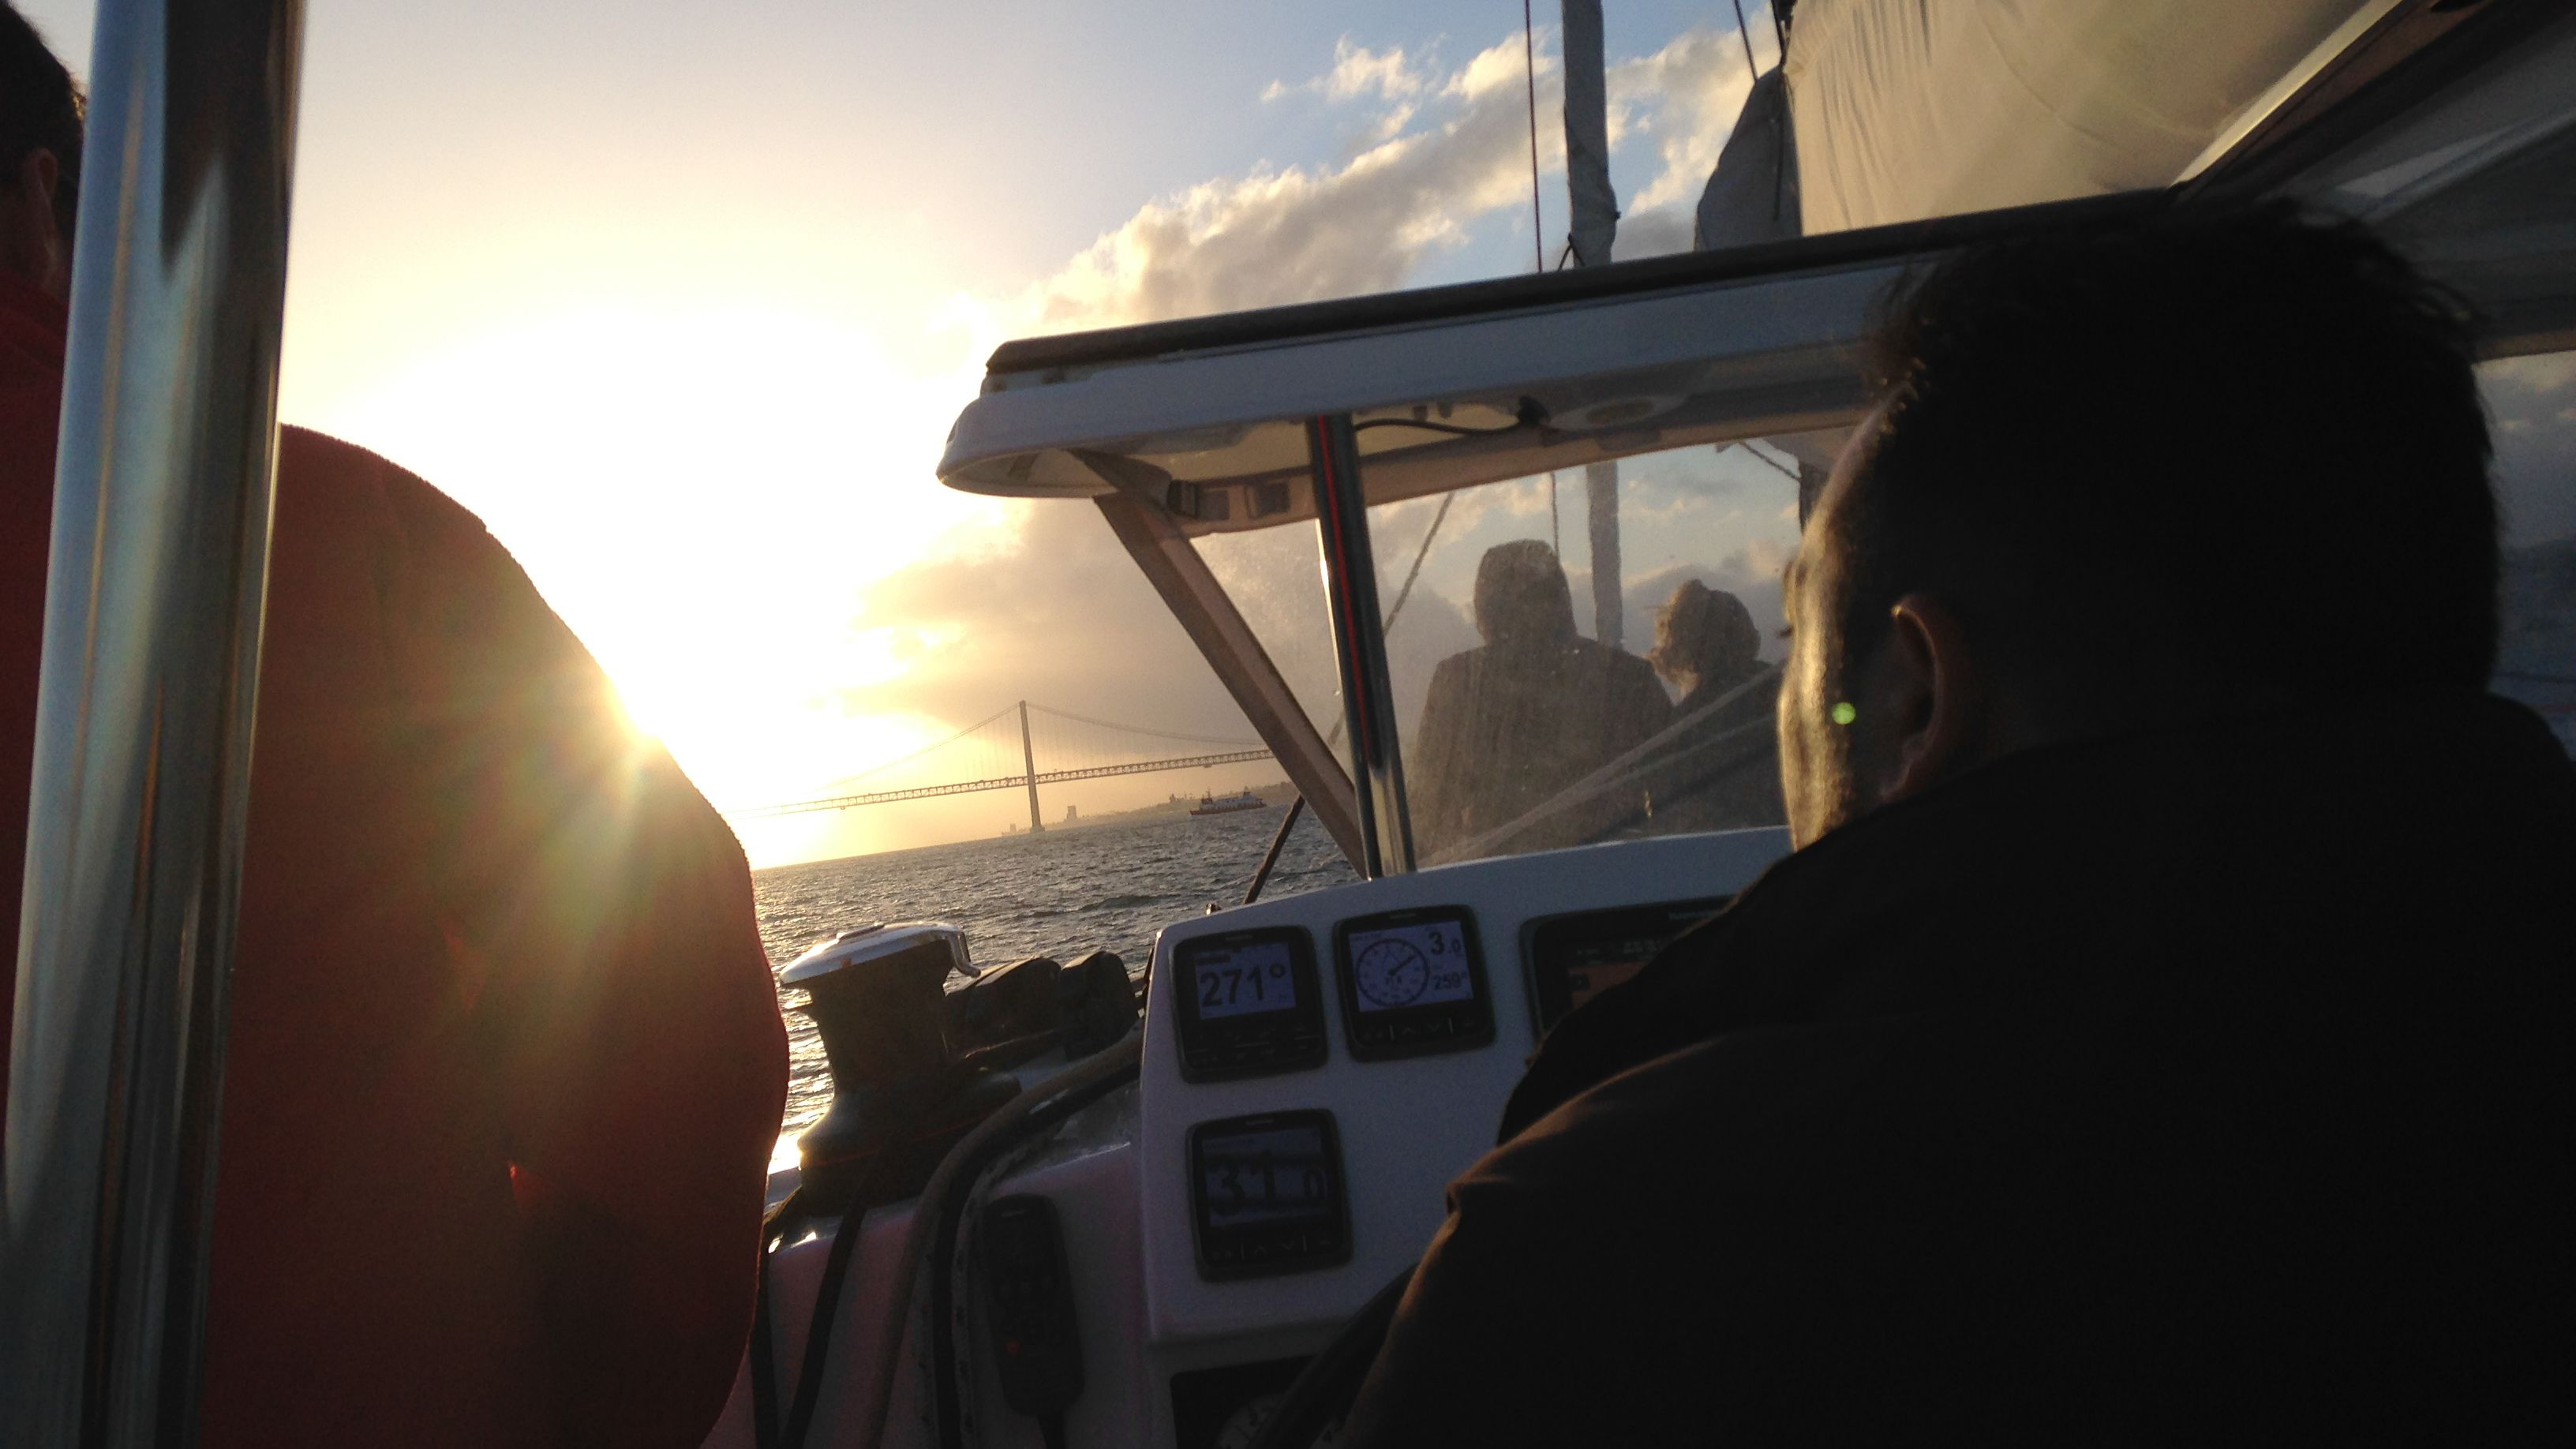 Passengers on boat observing the sunrise.